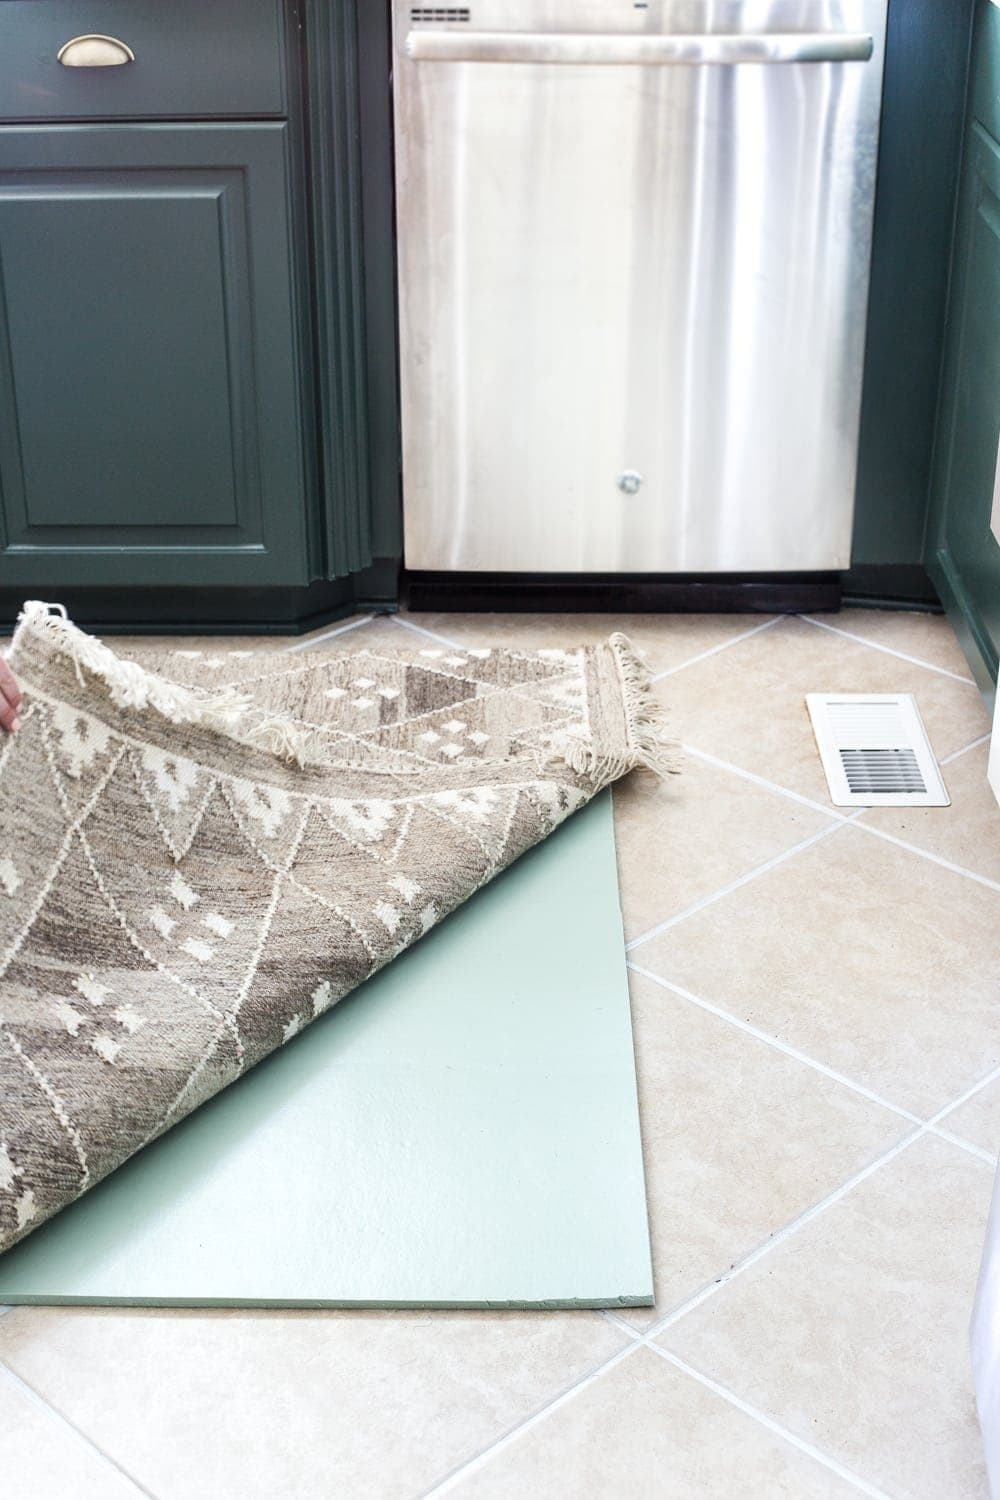 Memory Foam Layered Kitchen Rug And Tile Grout Refresh Bless Er House